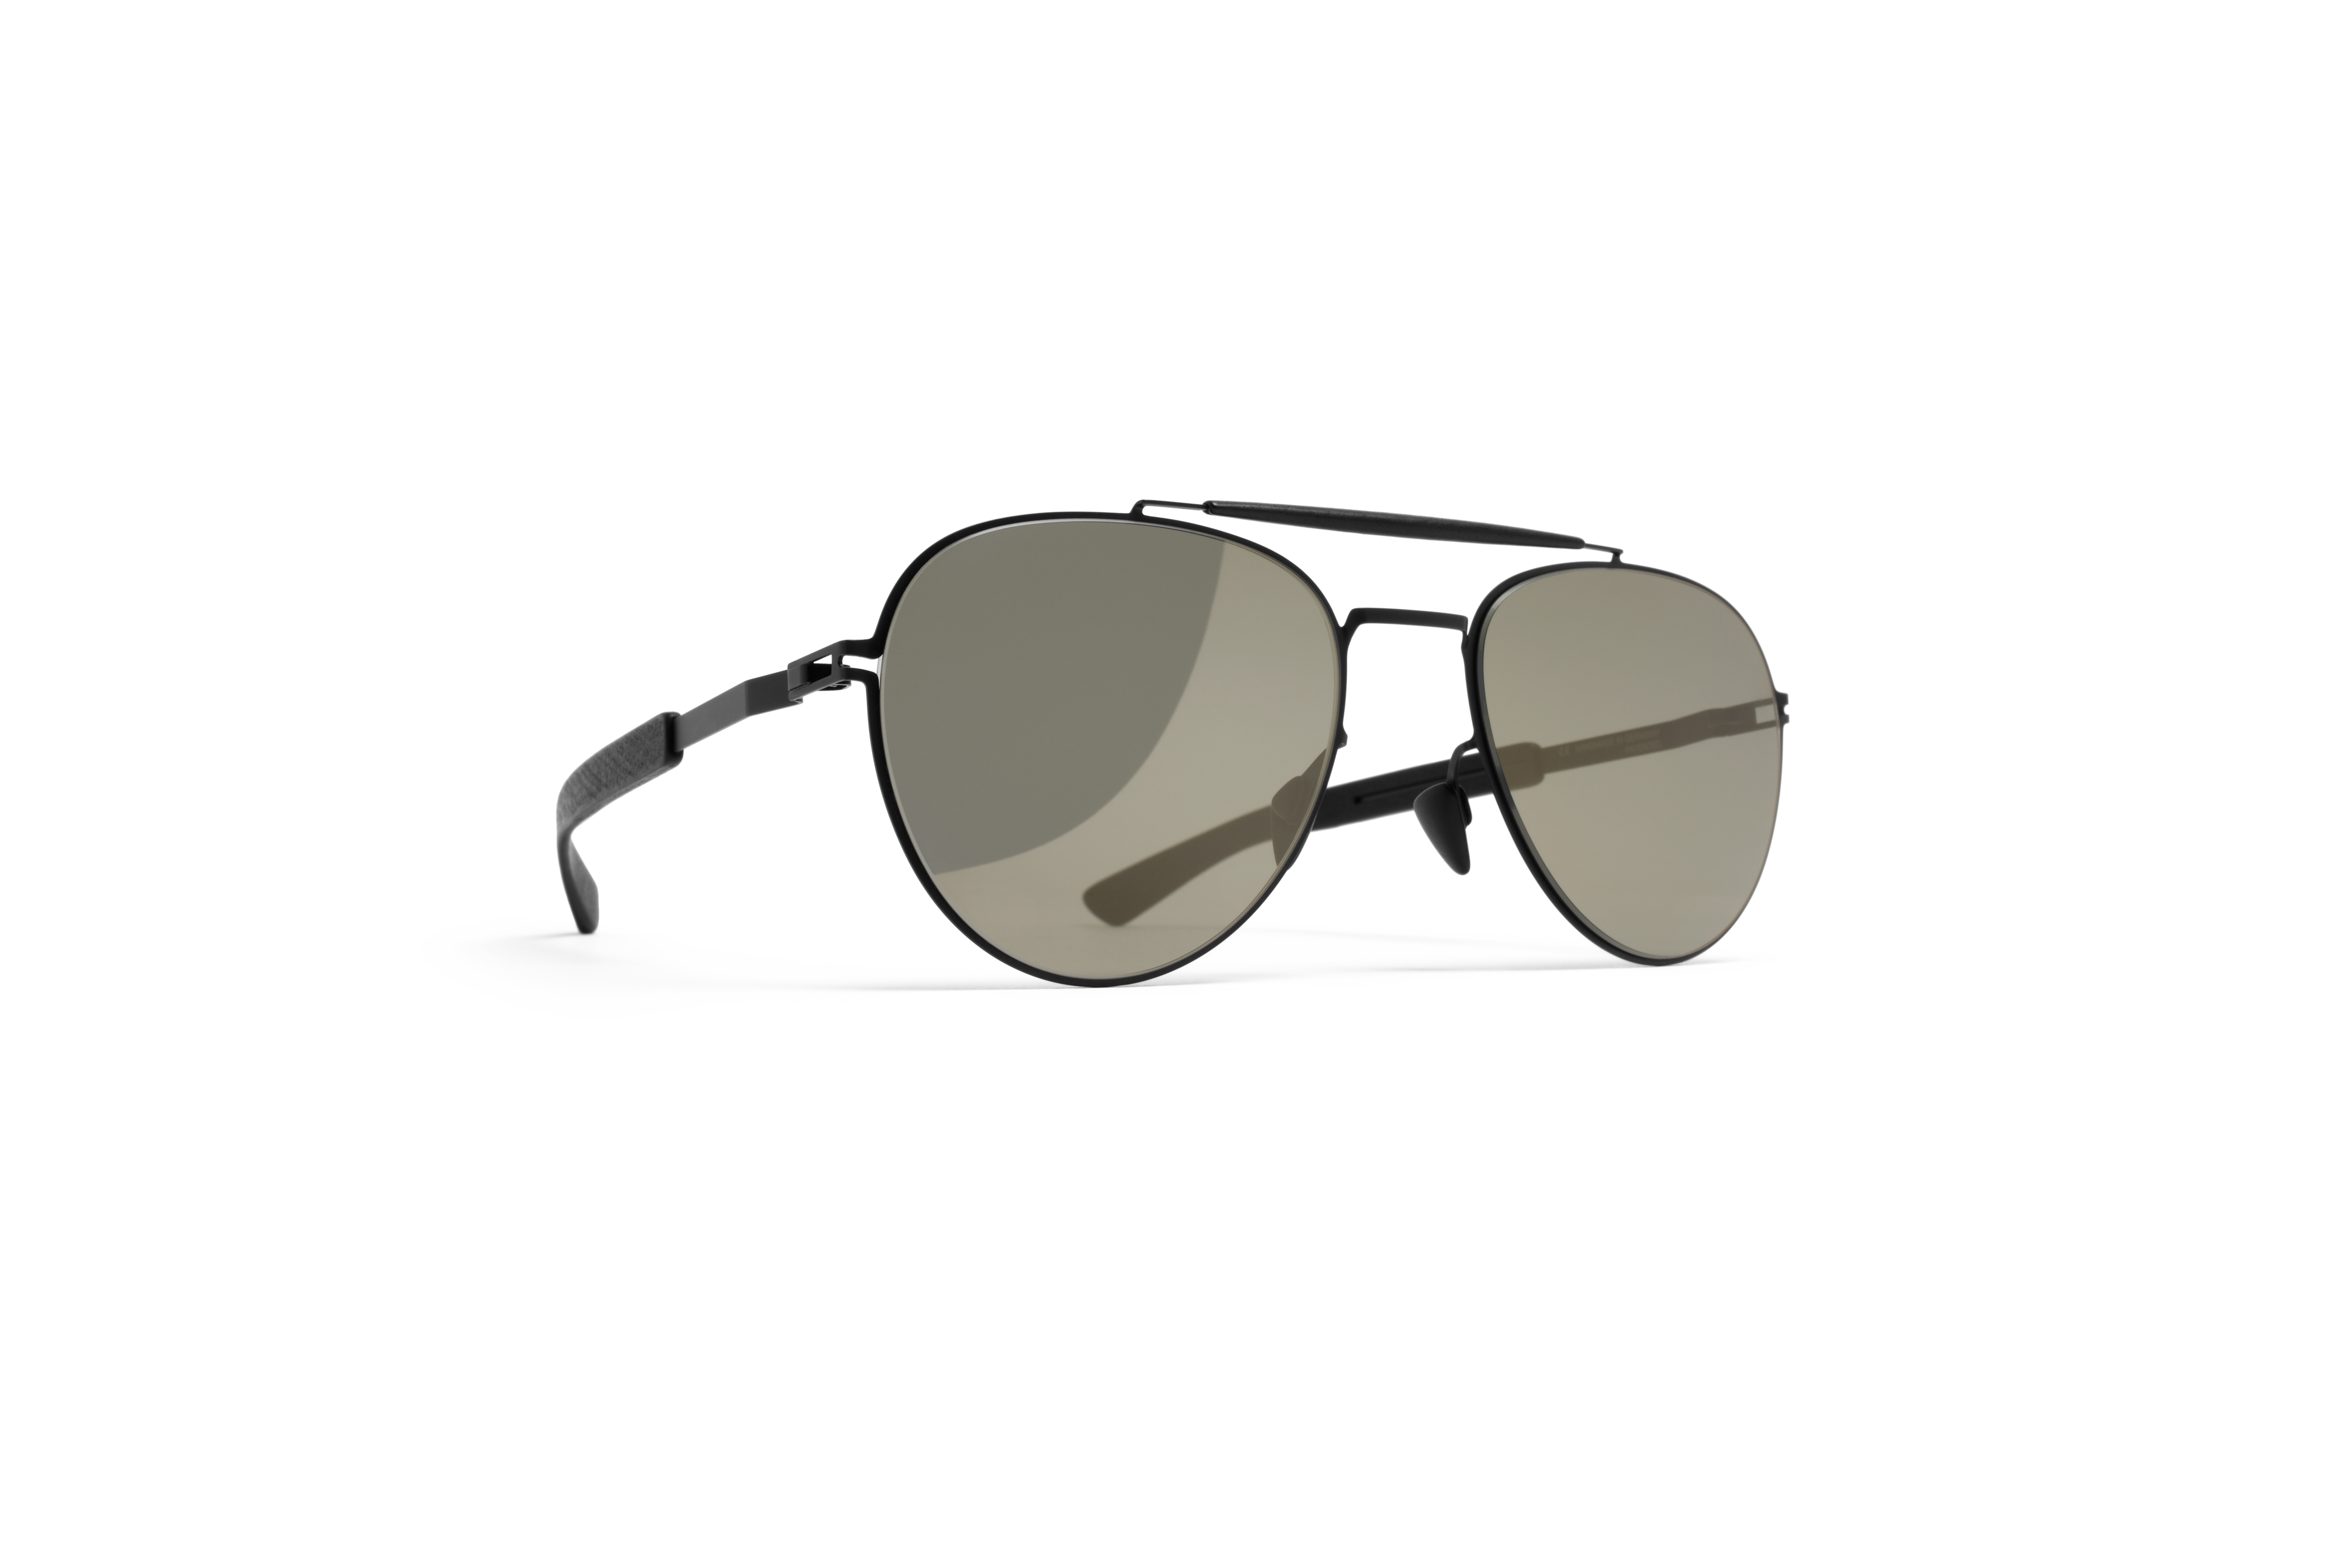 MYKITA Mylon Rx Sloe Mh1 Black Pitch Black Gunmeta